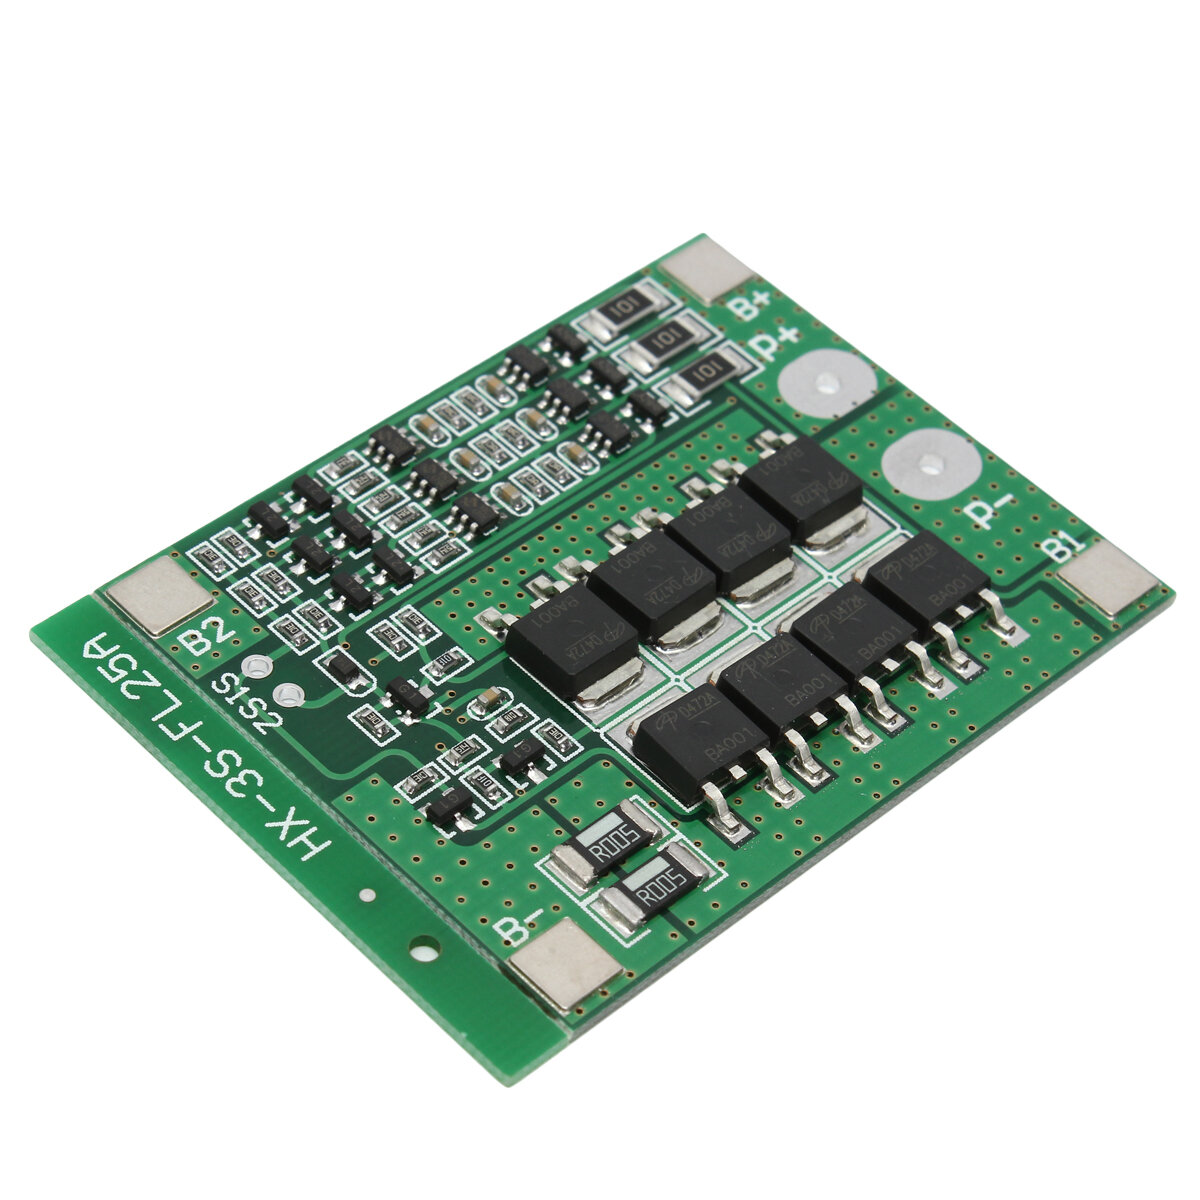 3s 111v 25a 18650 Li Ion Lithium Battery Bms Protection Pcb Board Is Calculated With The Other Replaced By A Short Circuit Balance